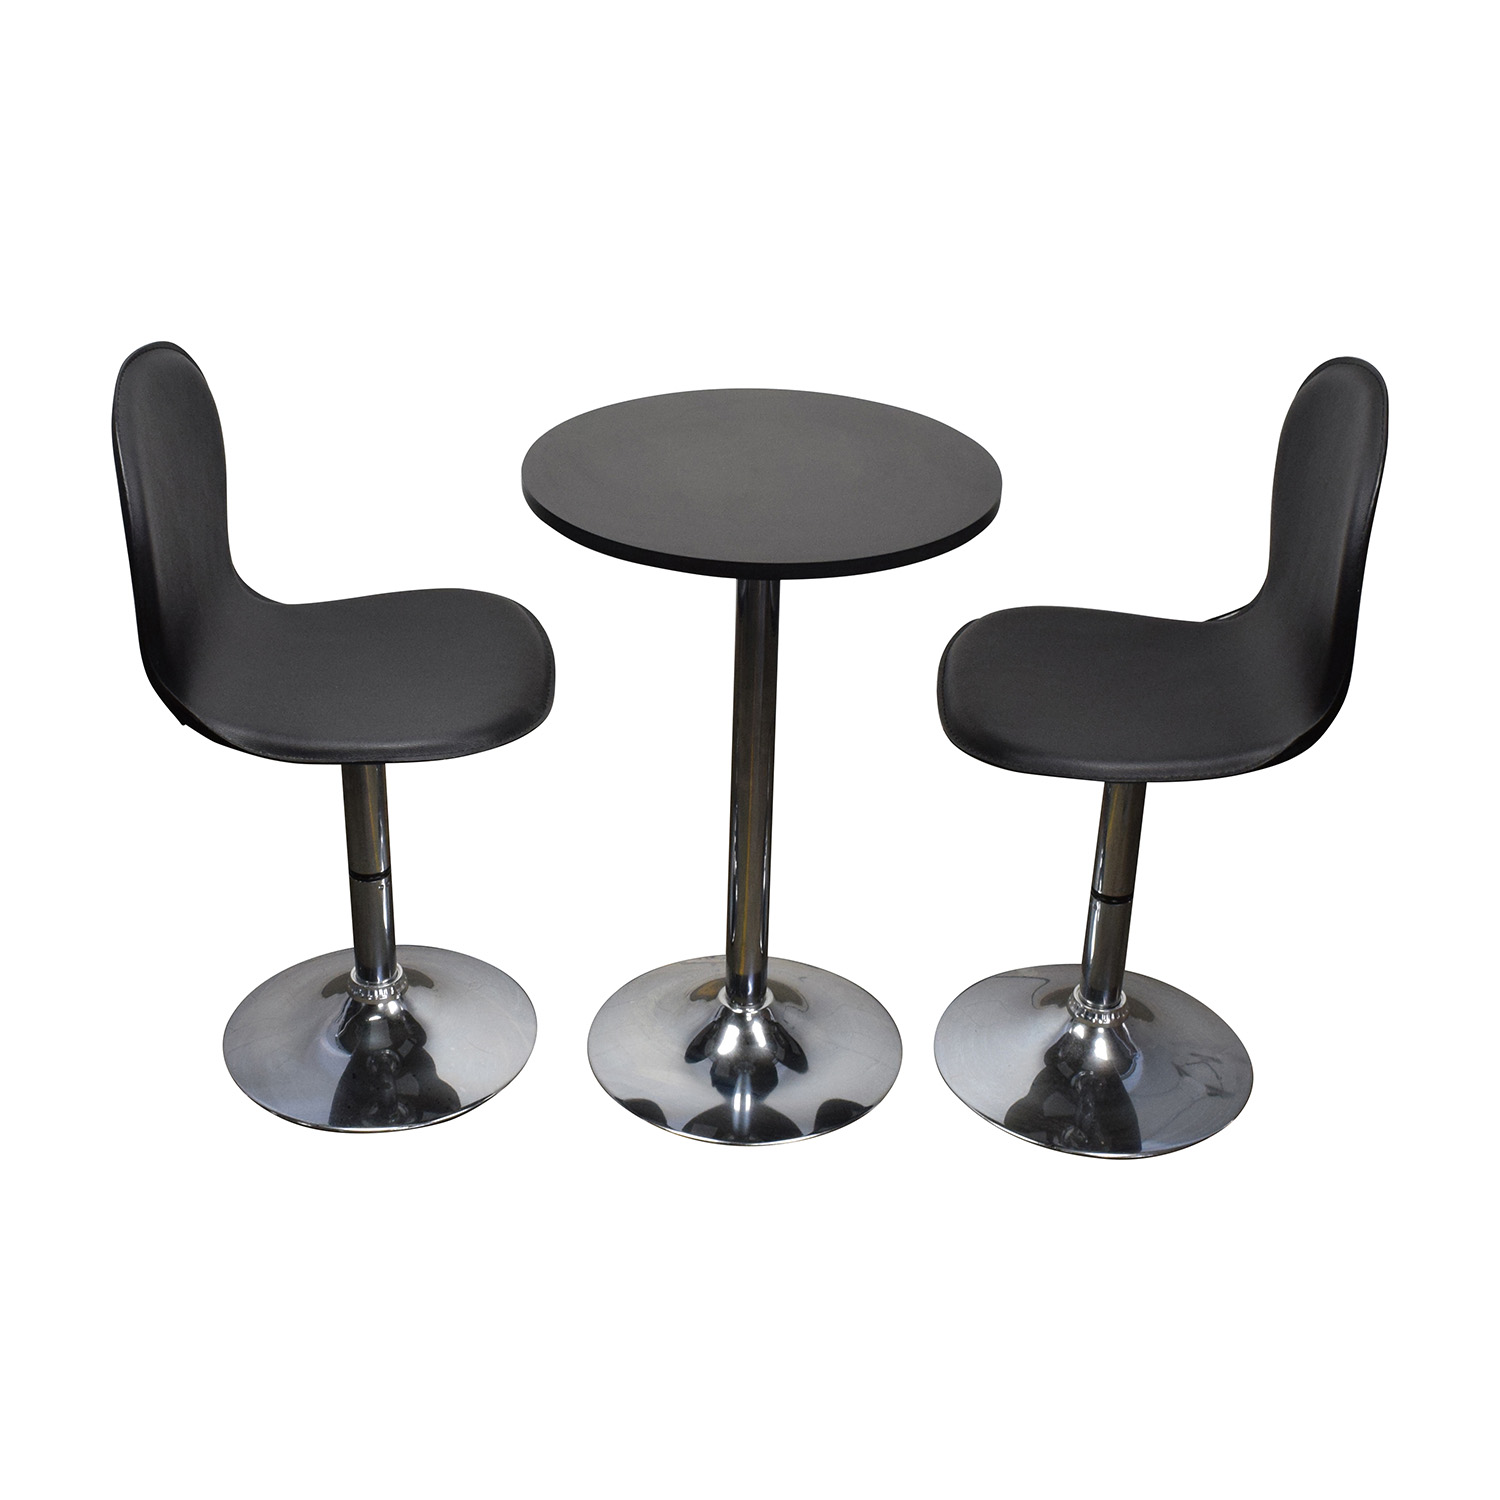 Bistro Table And Chairs Target: Target Target Cafe Table And Leather Chairs / Tables